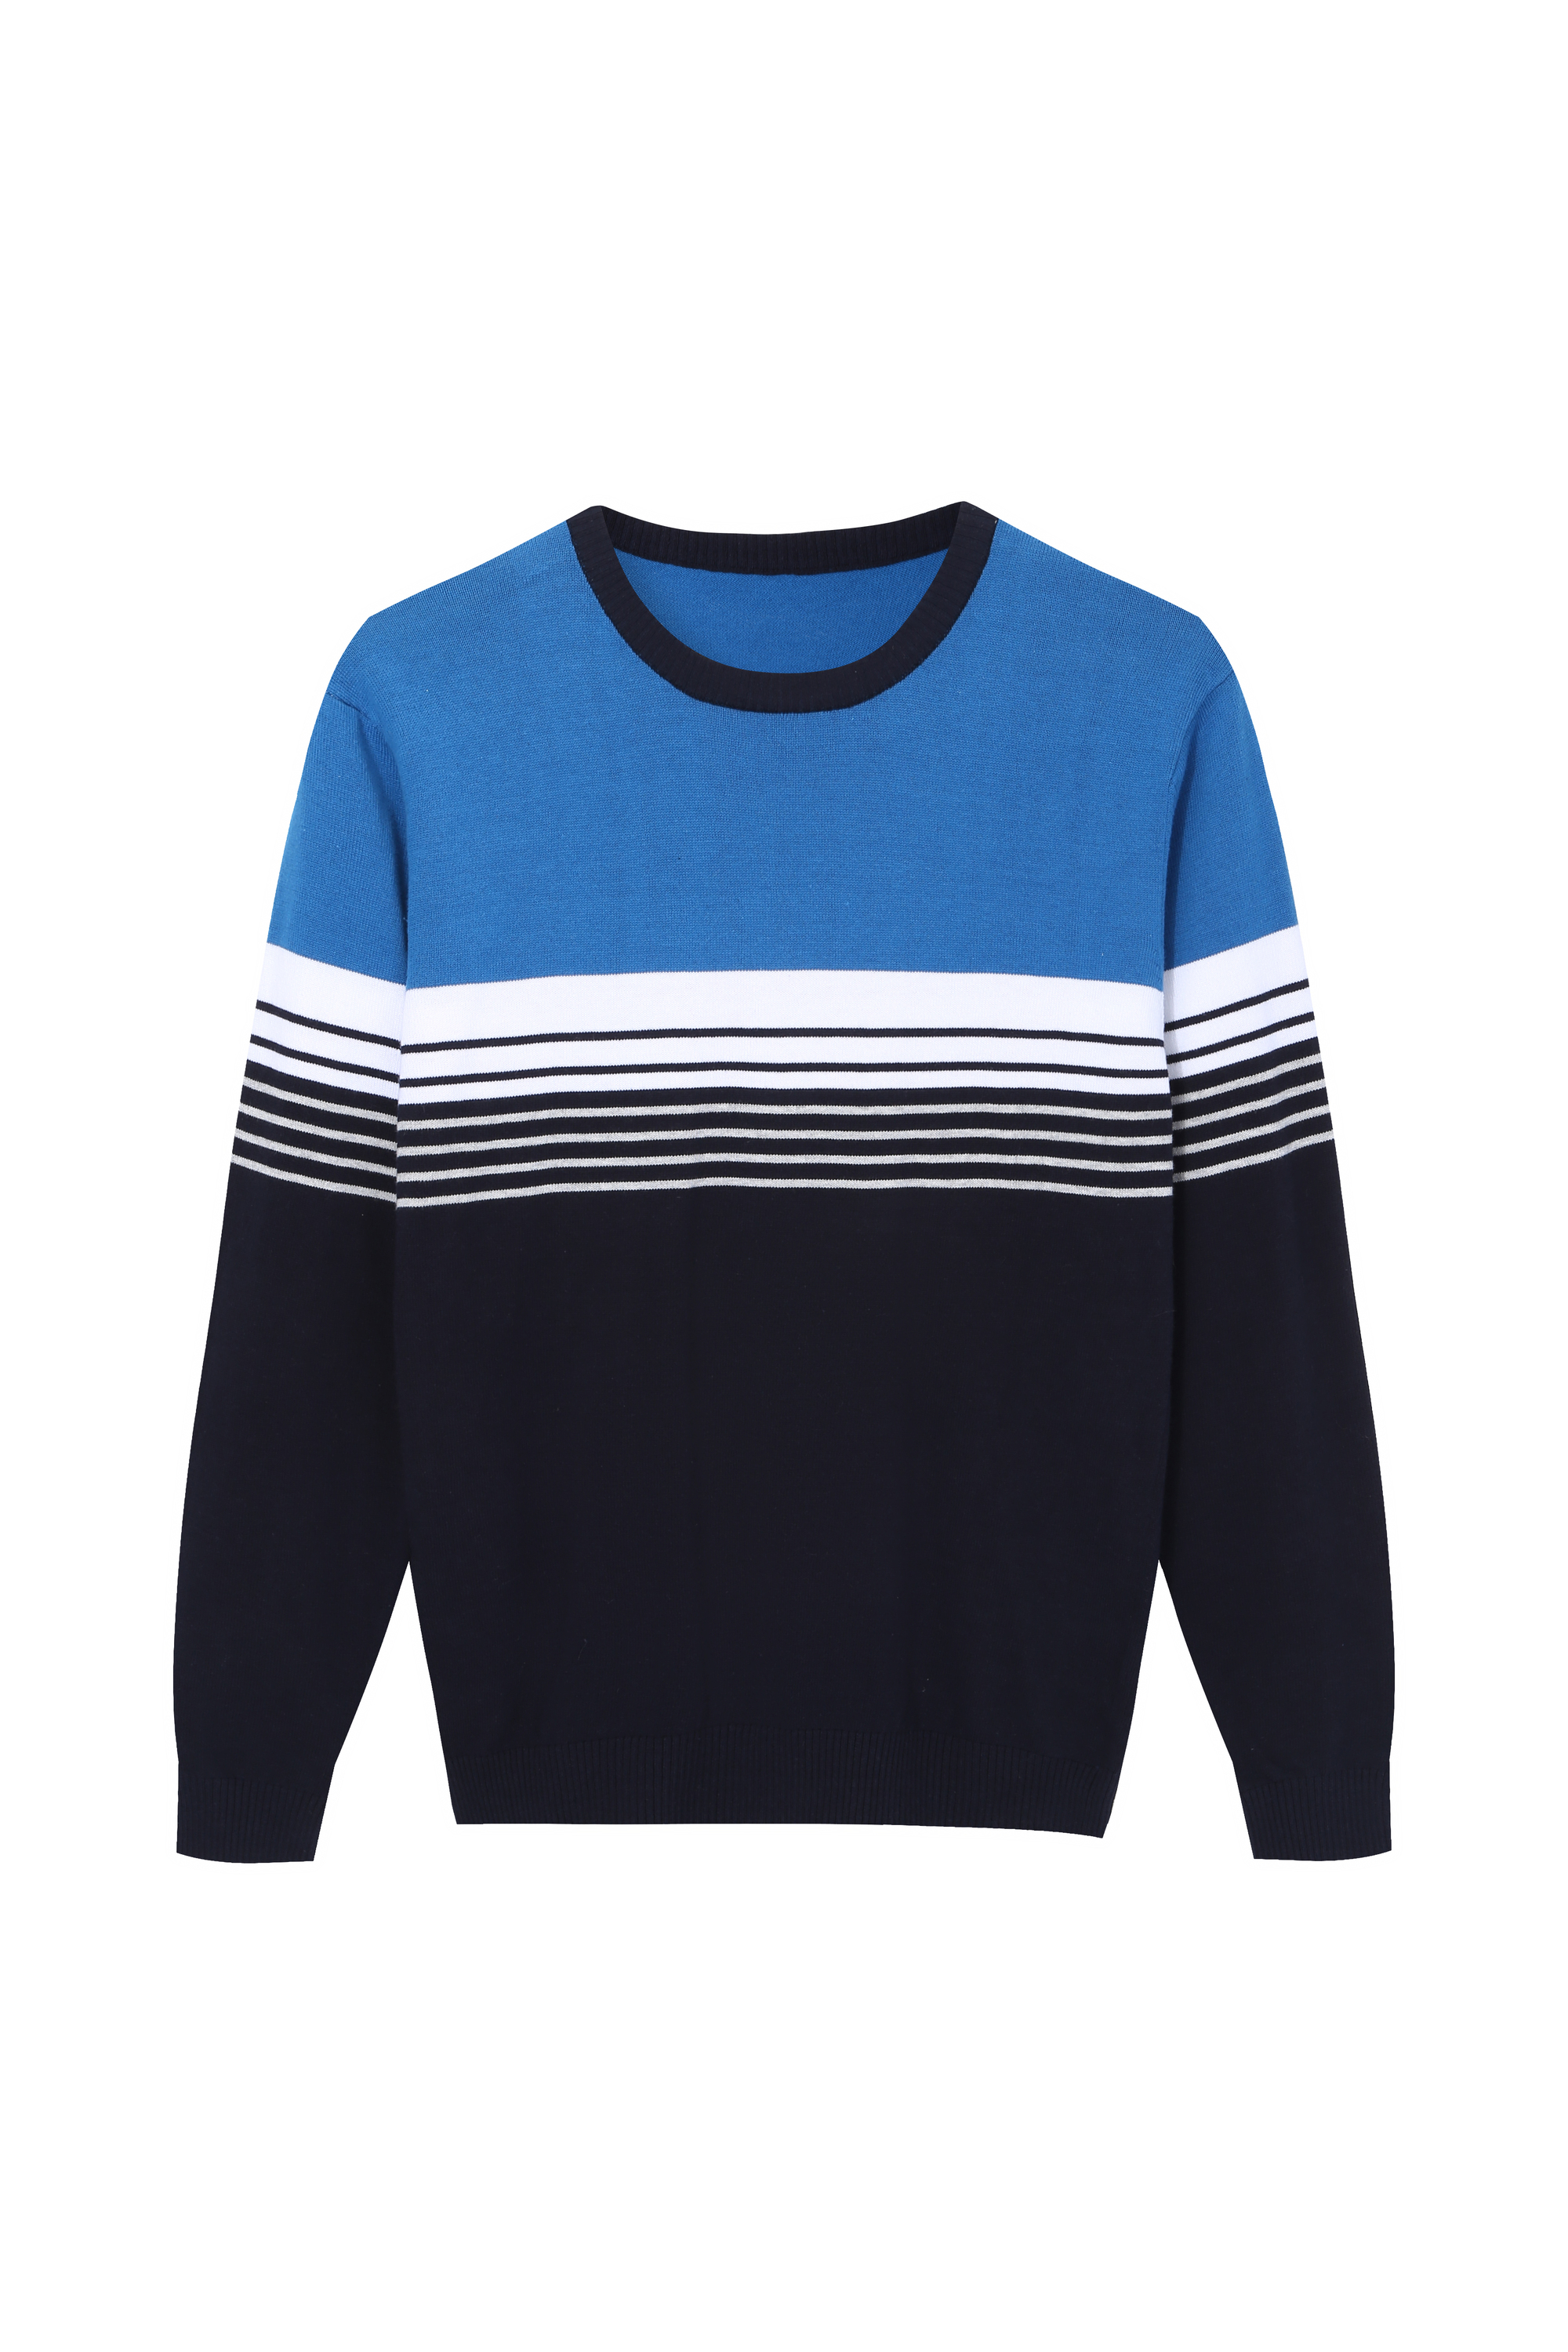 Men's Knitted Multi color Striped Crewneck Sweater